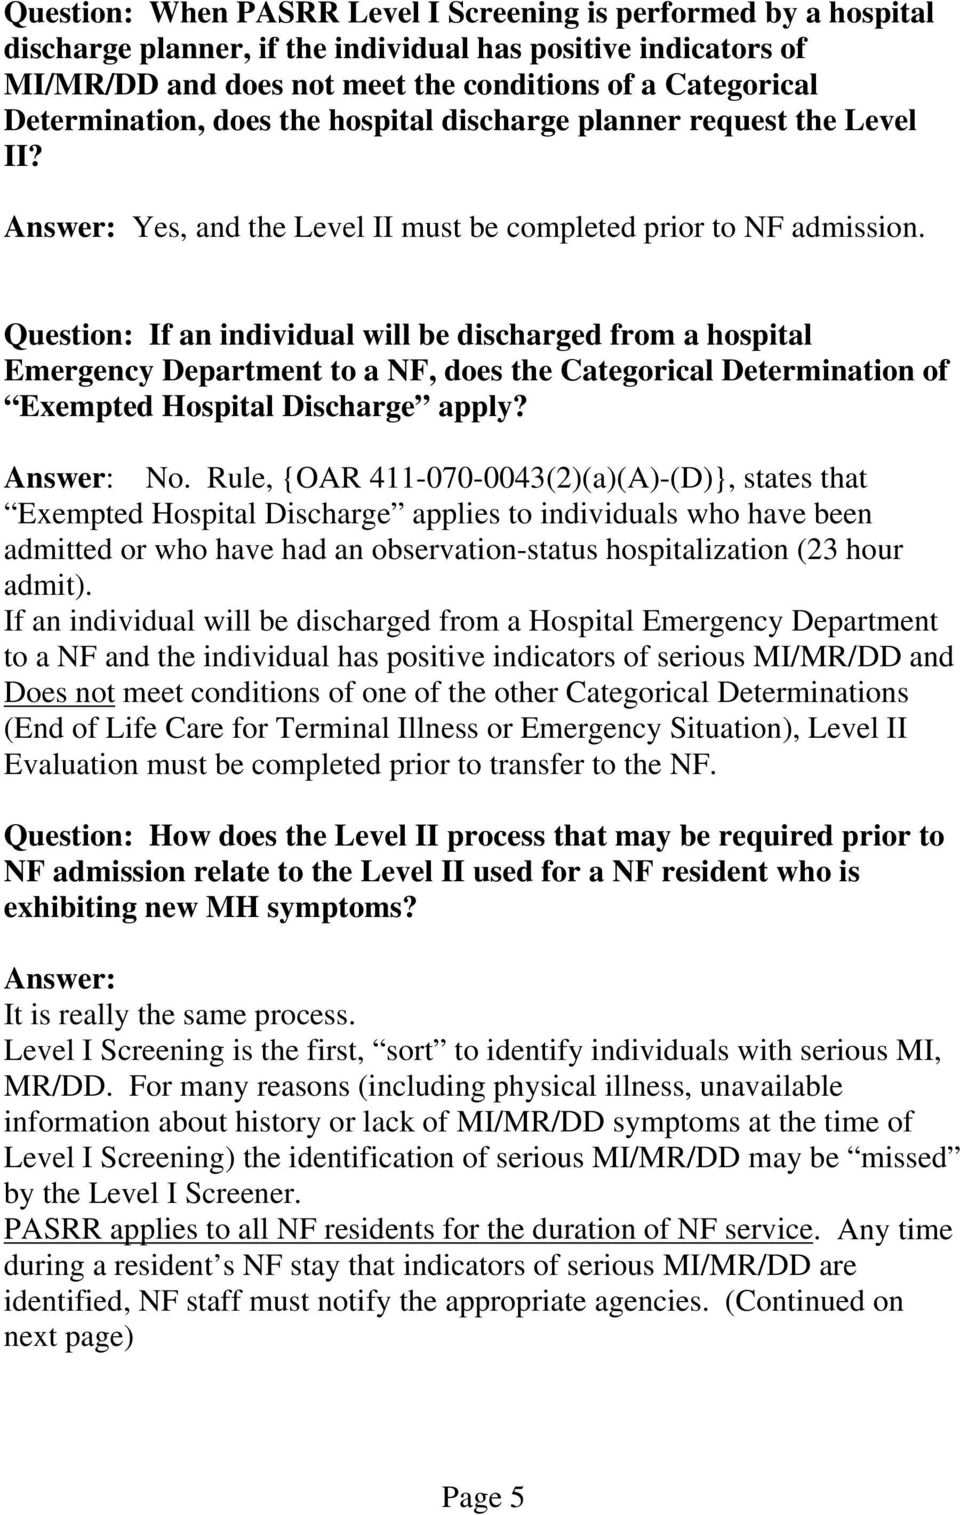 Question: If an individual will be discharged from a hospital Emergency Department to a NF, does the Categorical Determination of Exempted Hospital Discharge apply? No.